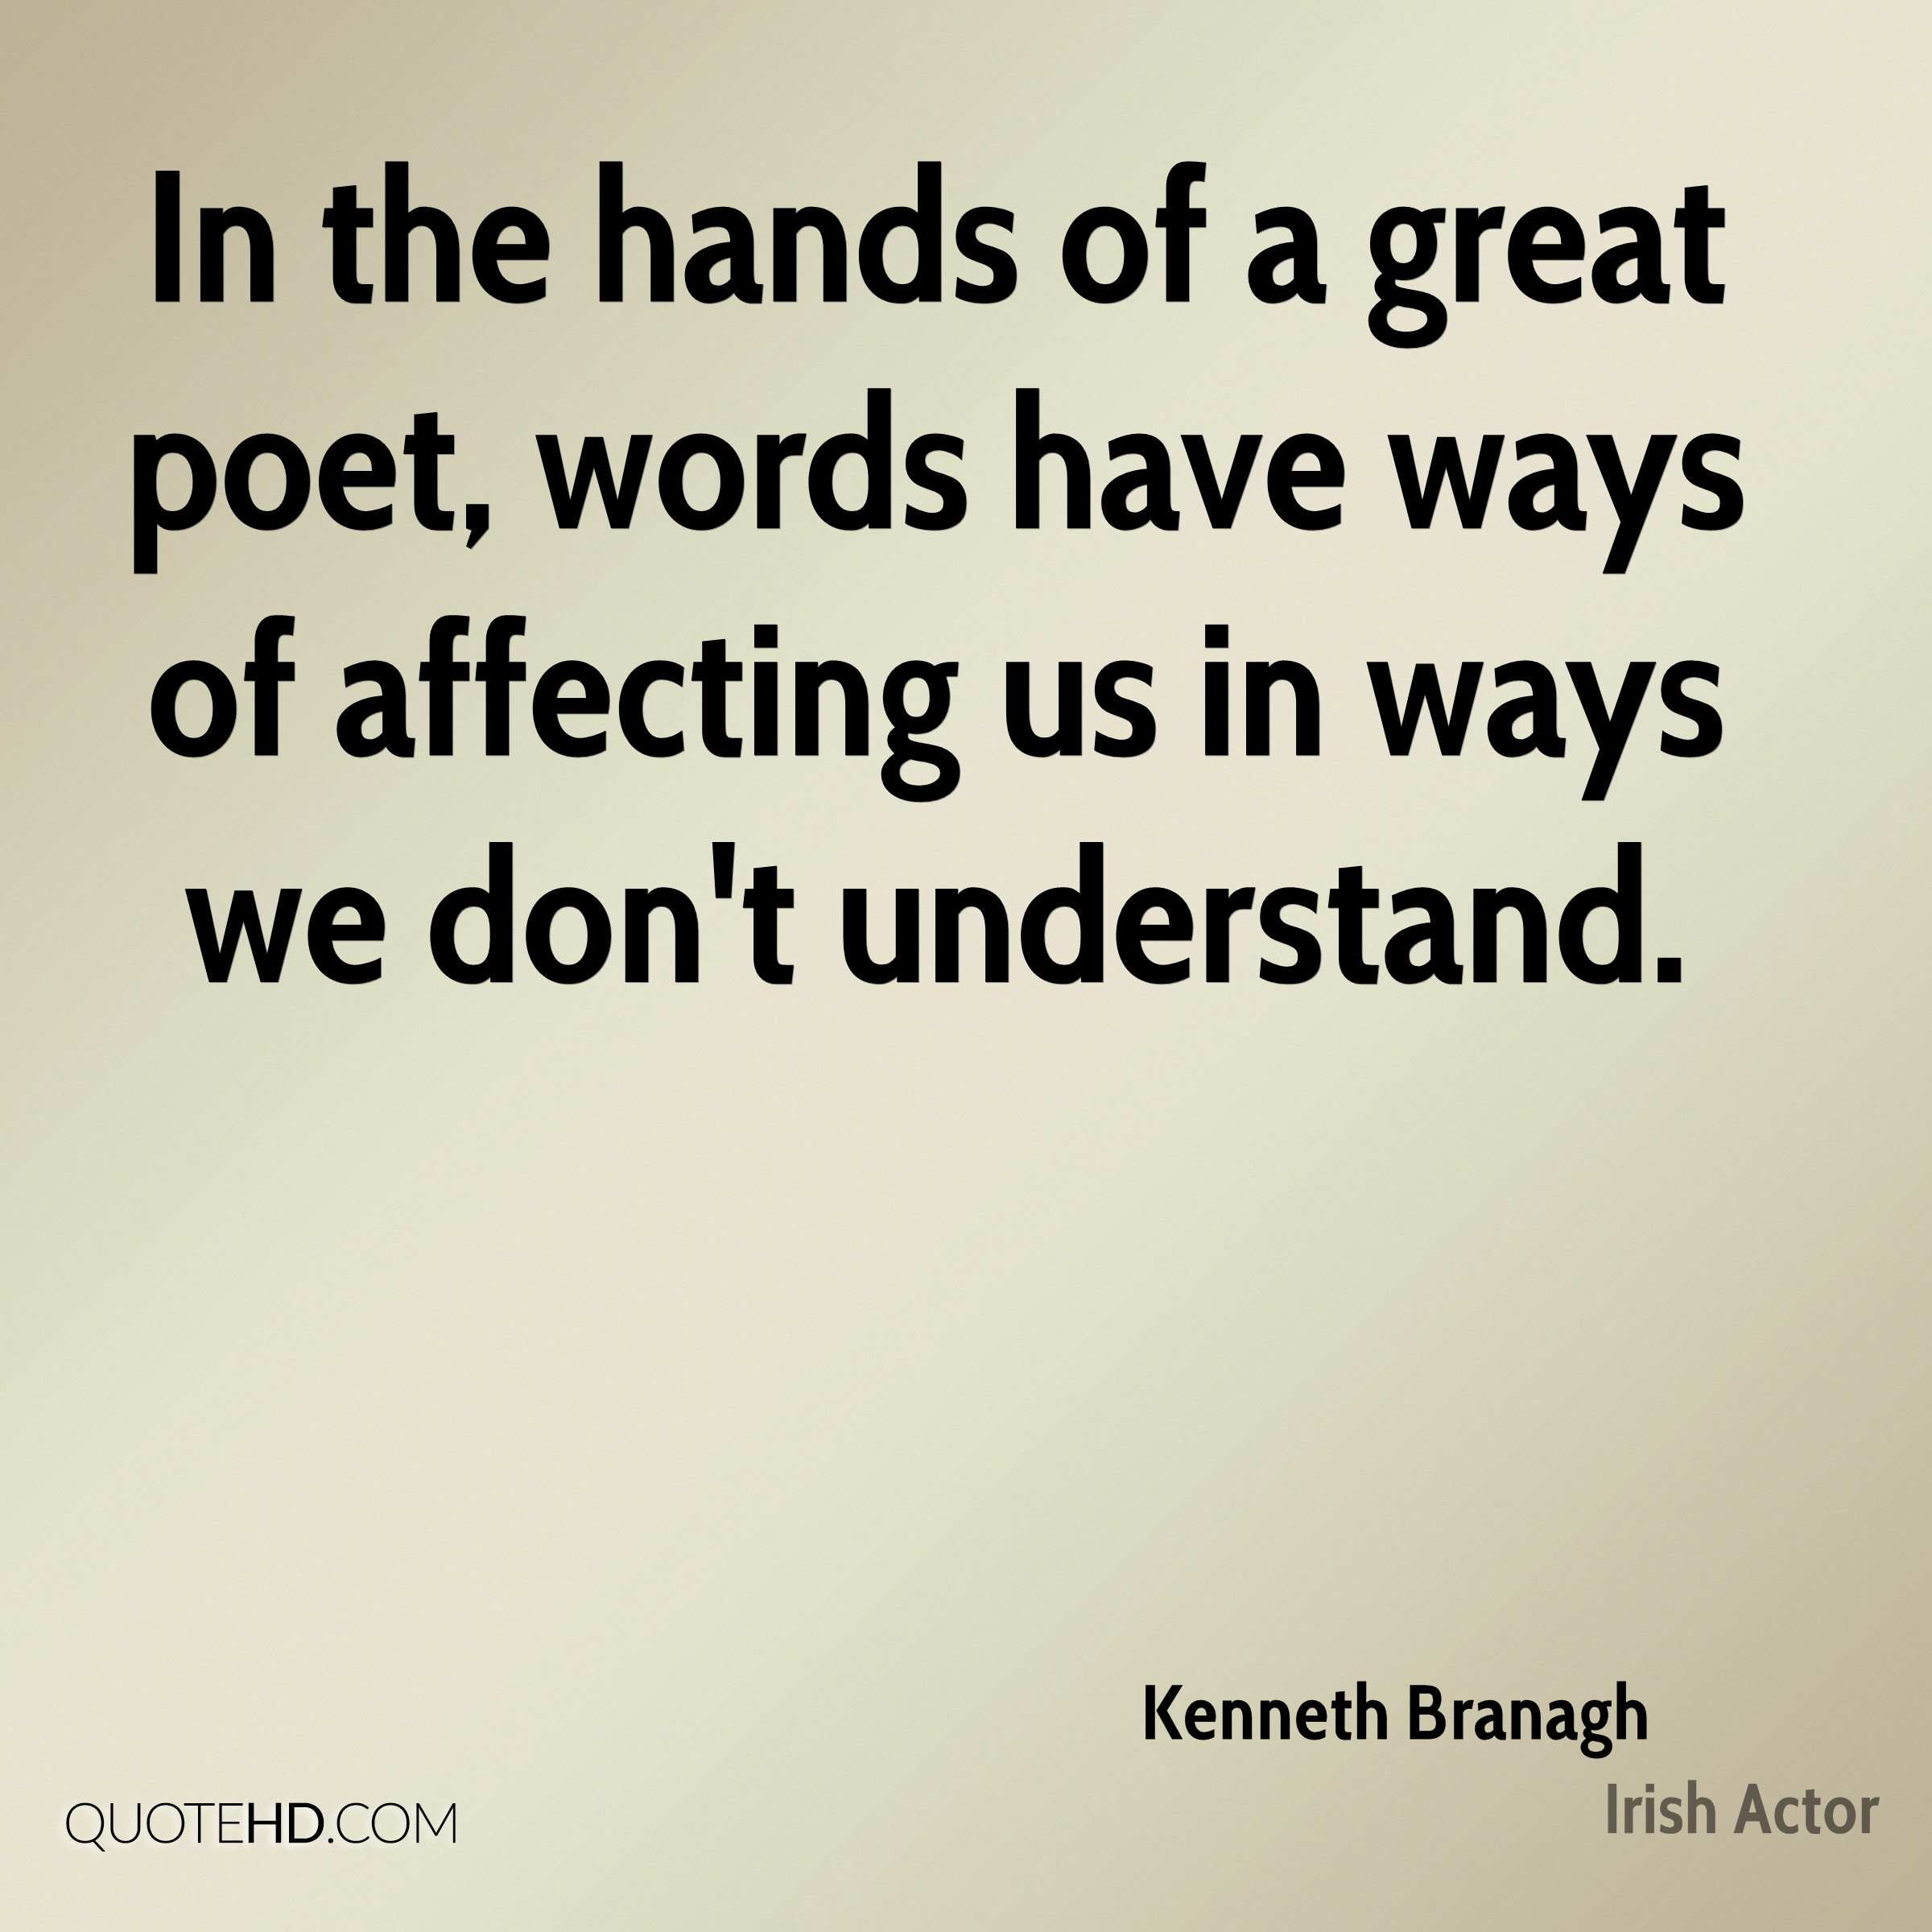 In the hands of a great poet, words have ways of affecting us in ways we don't understand.